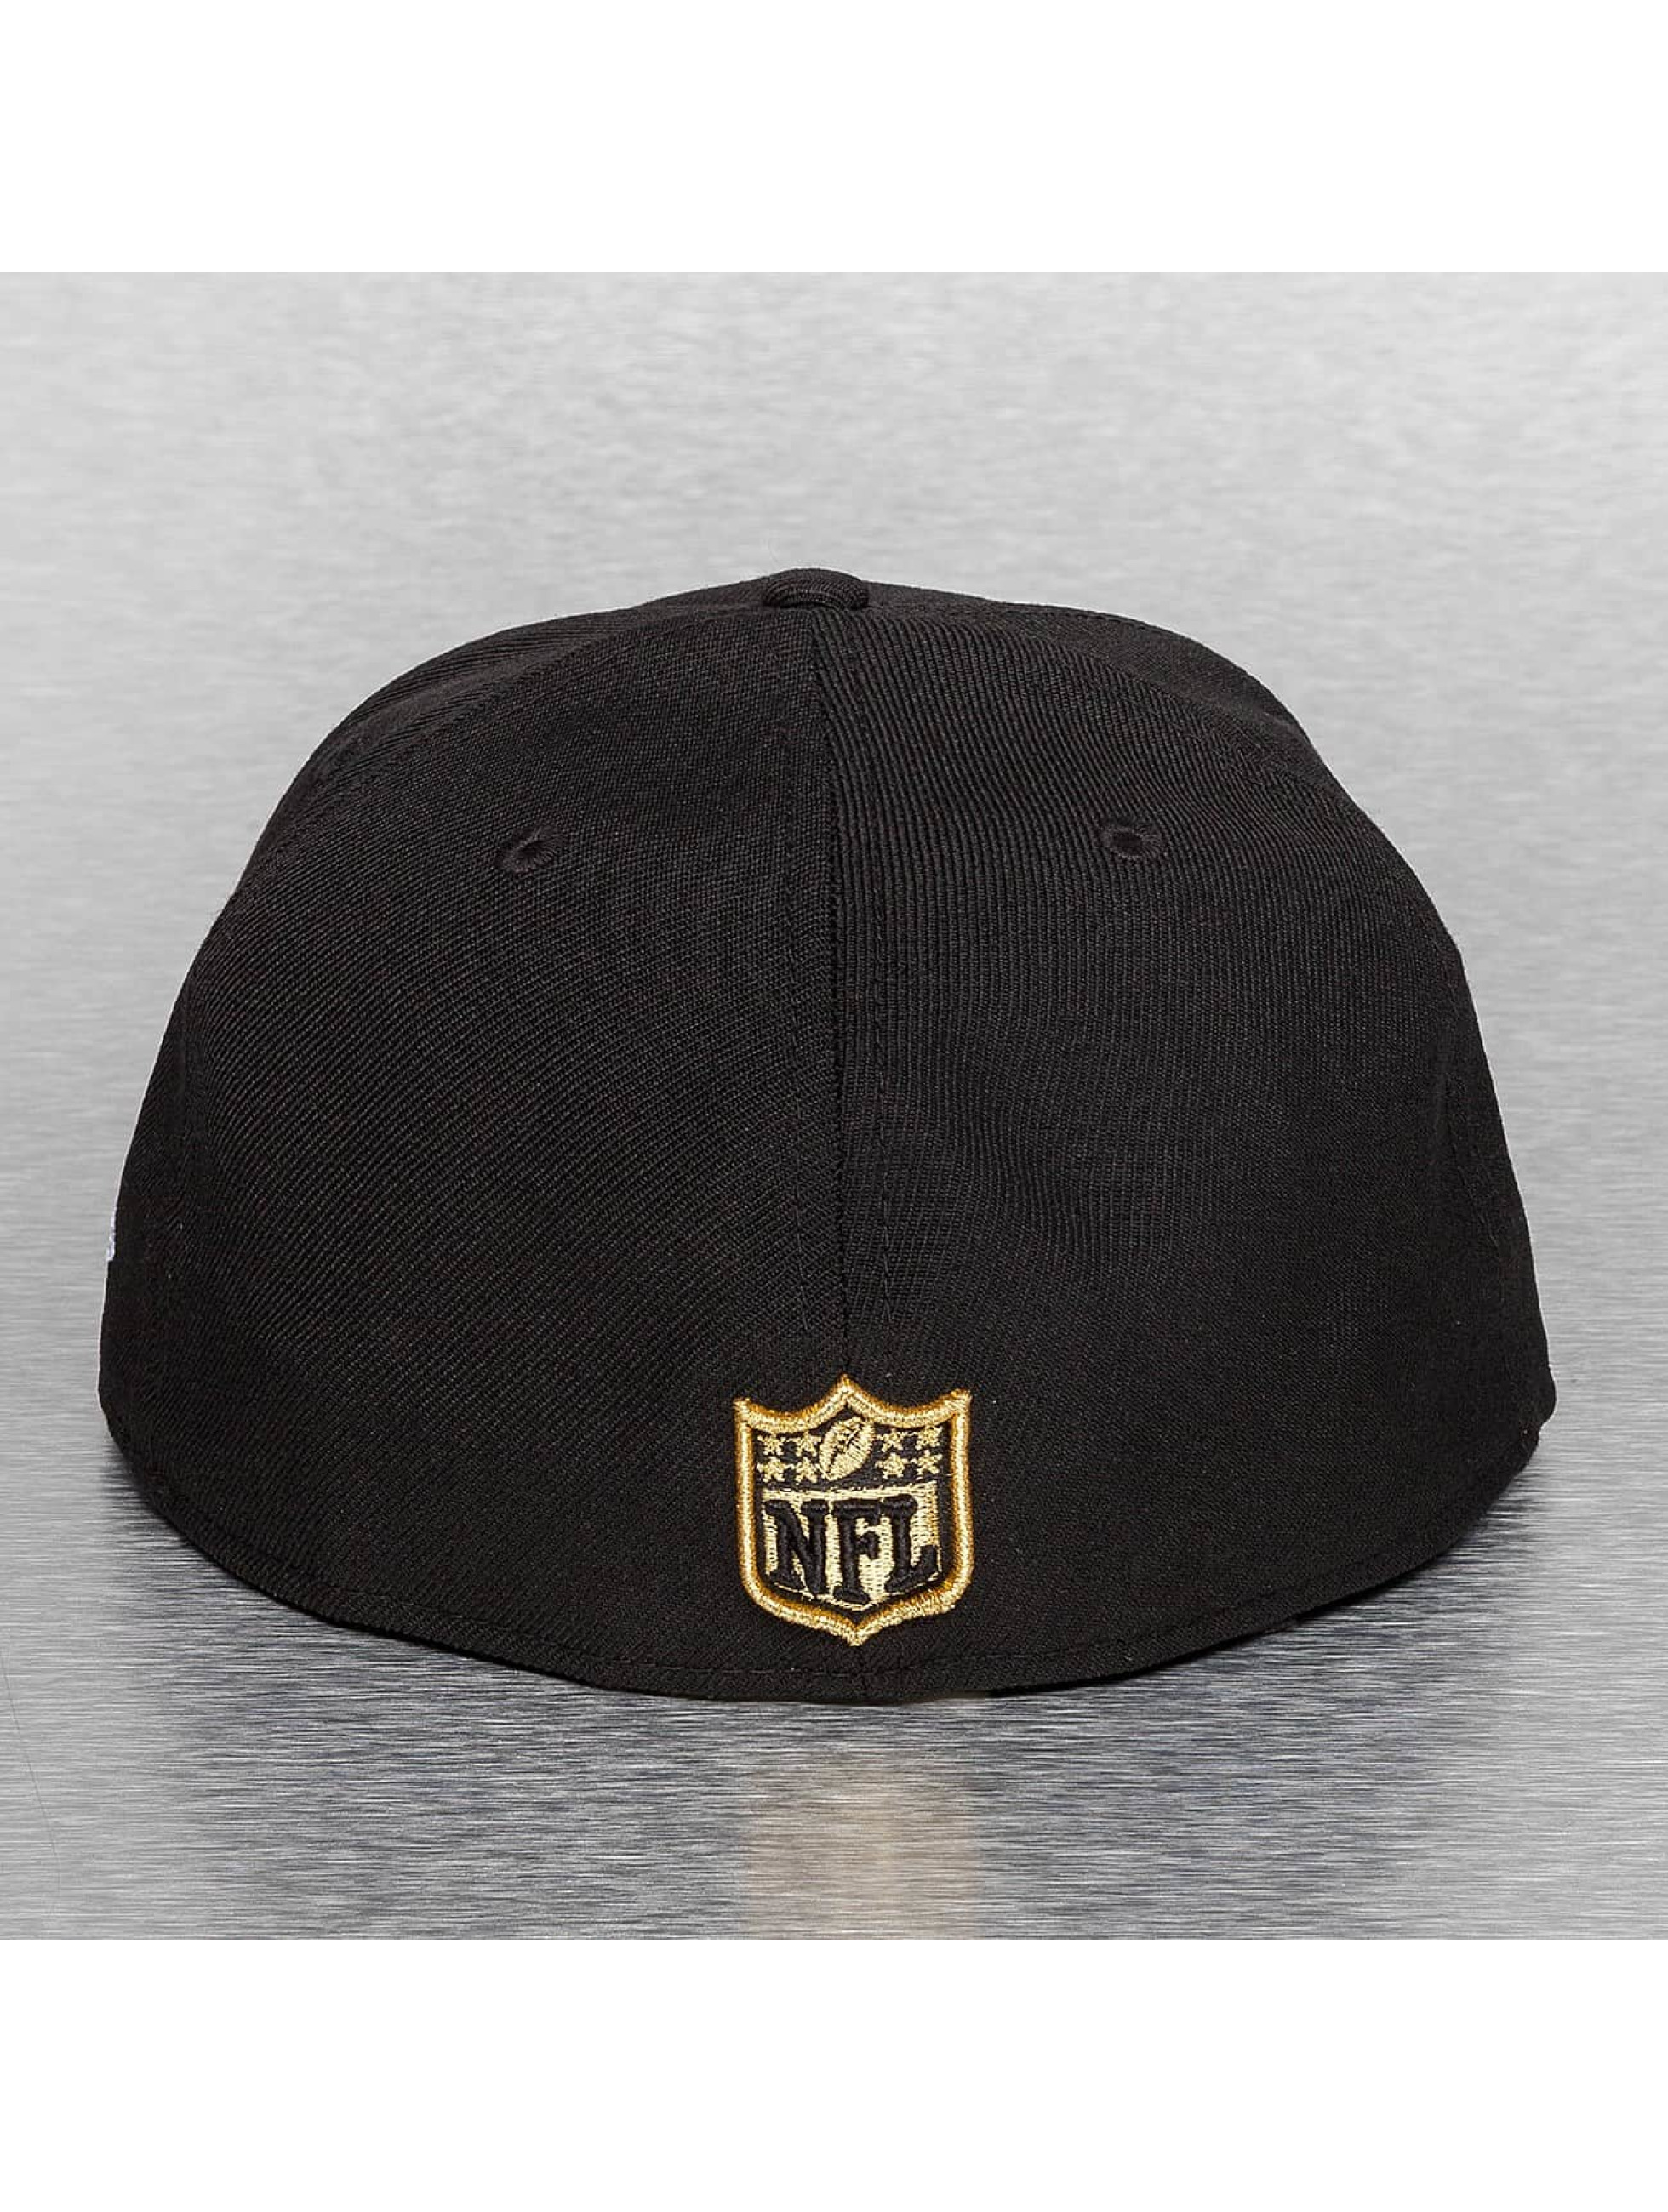 New Era Бейсболка On Field 15 Sideline New Orleans Saints черный